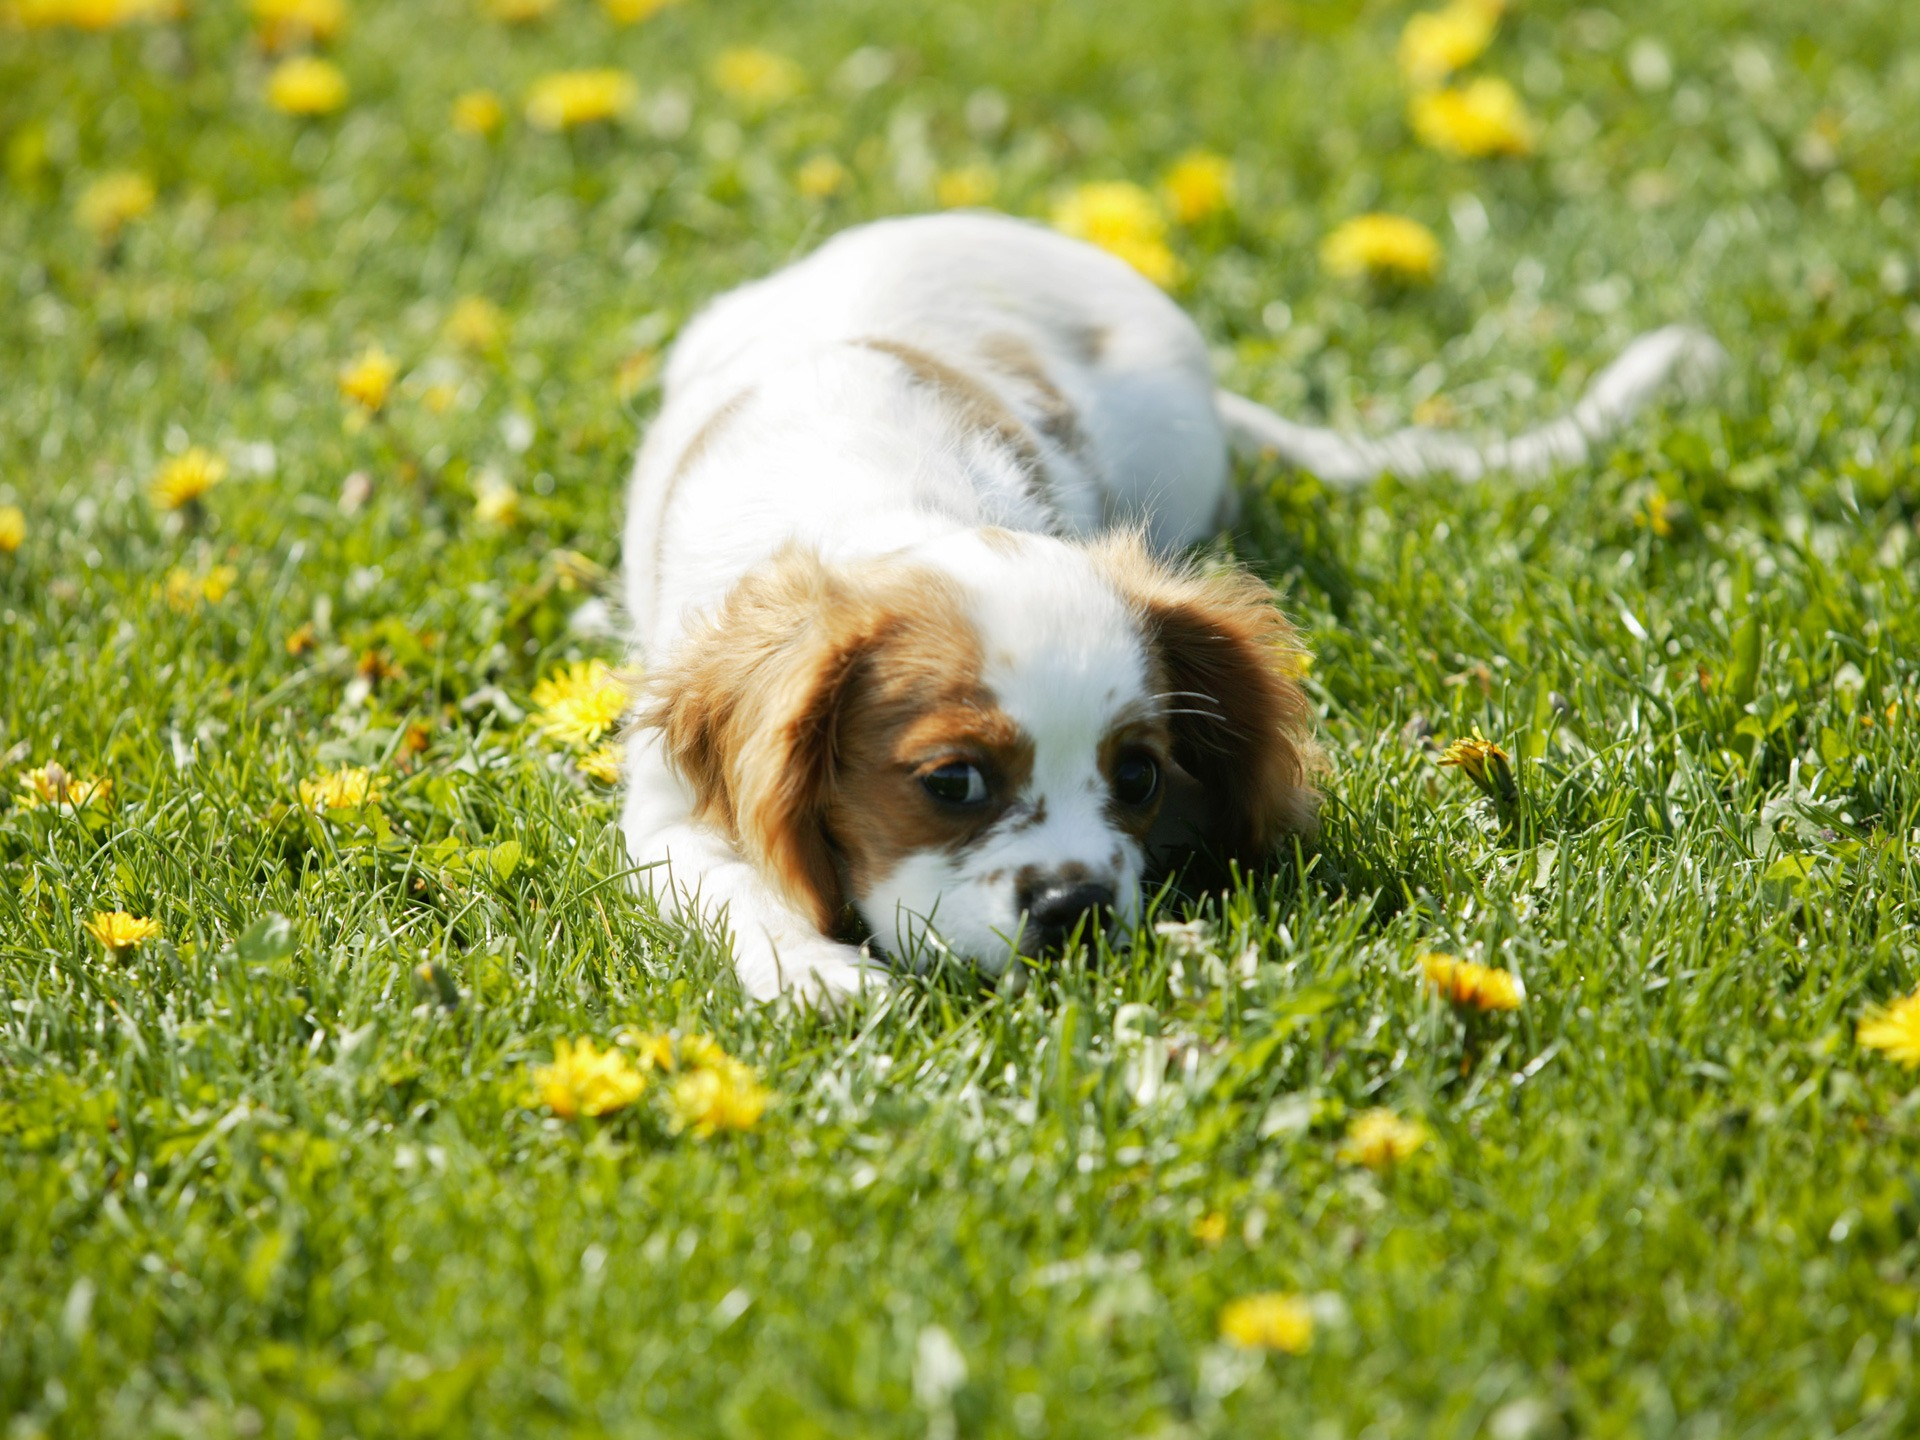 Bored-Dogs-Animals-in-format-for-free-wallpaper-wpc5803017